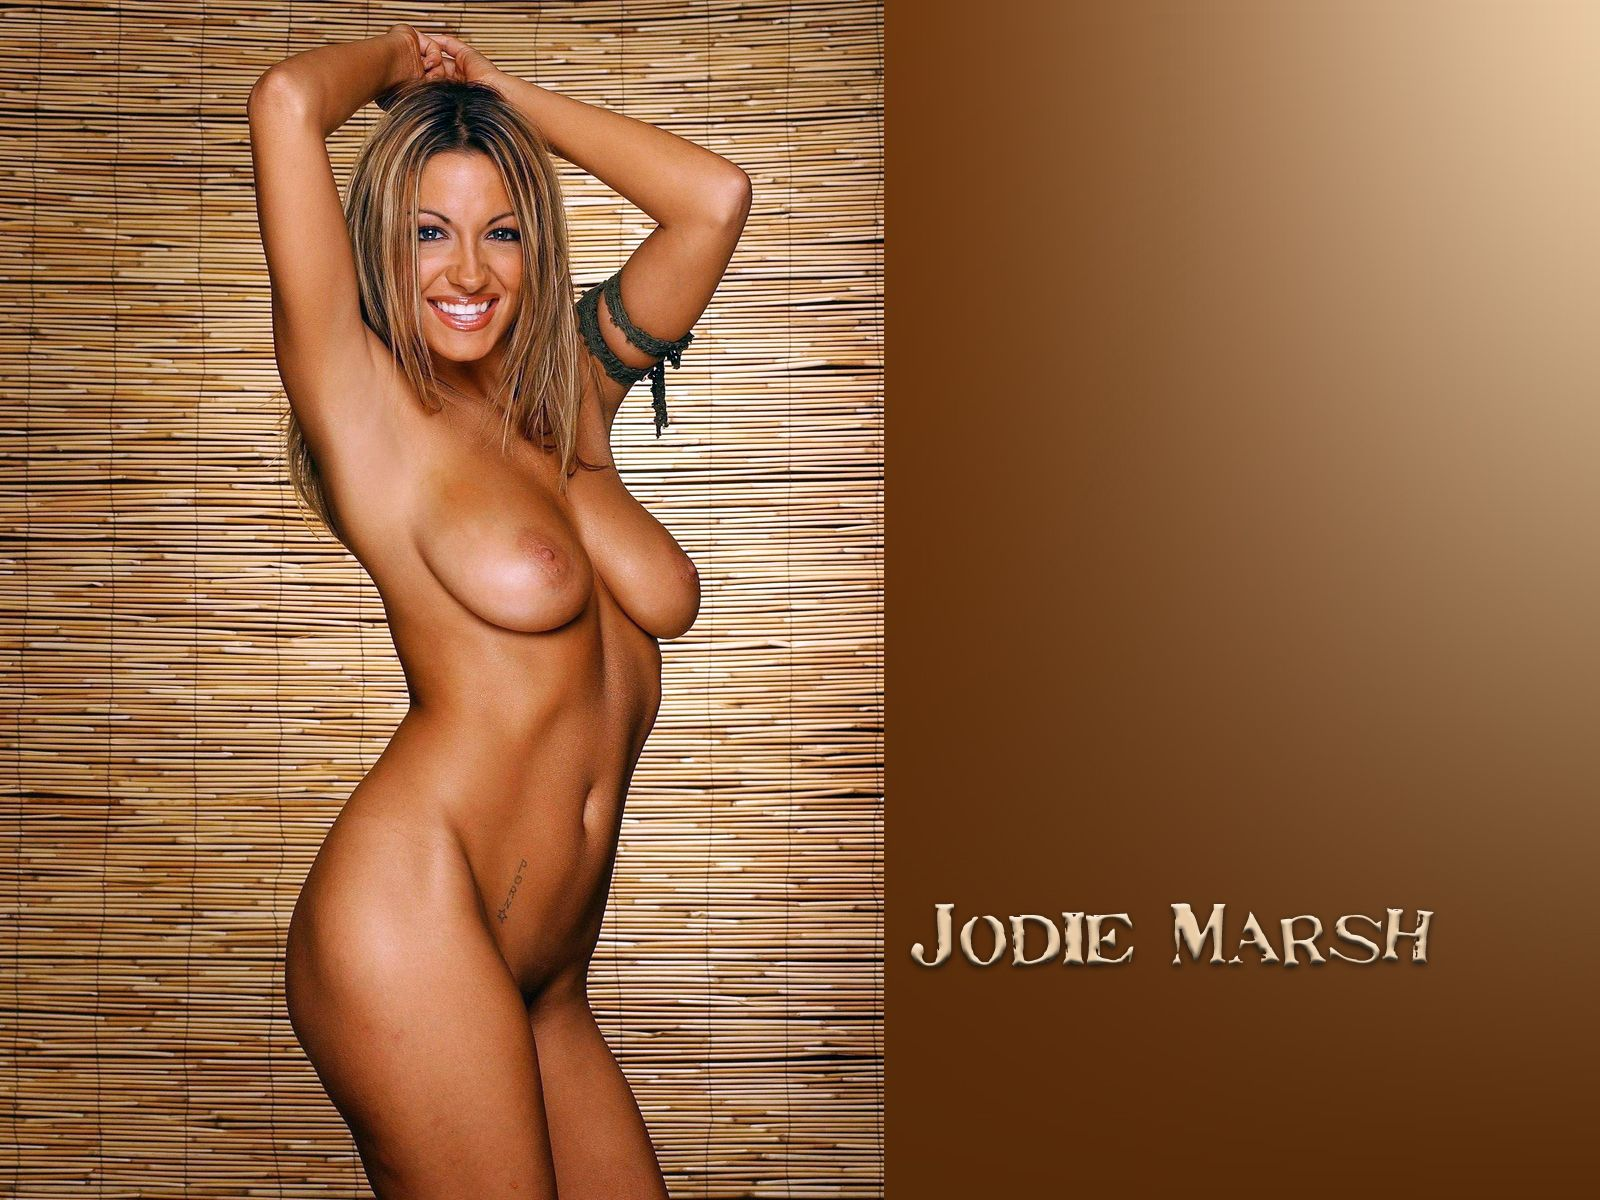 jodie marsh naked